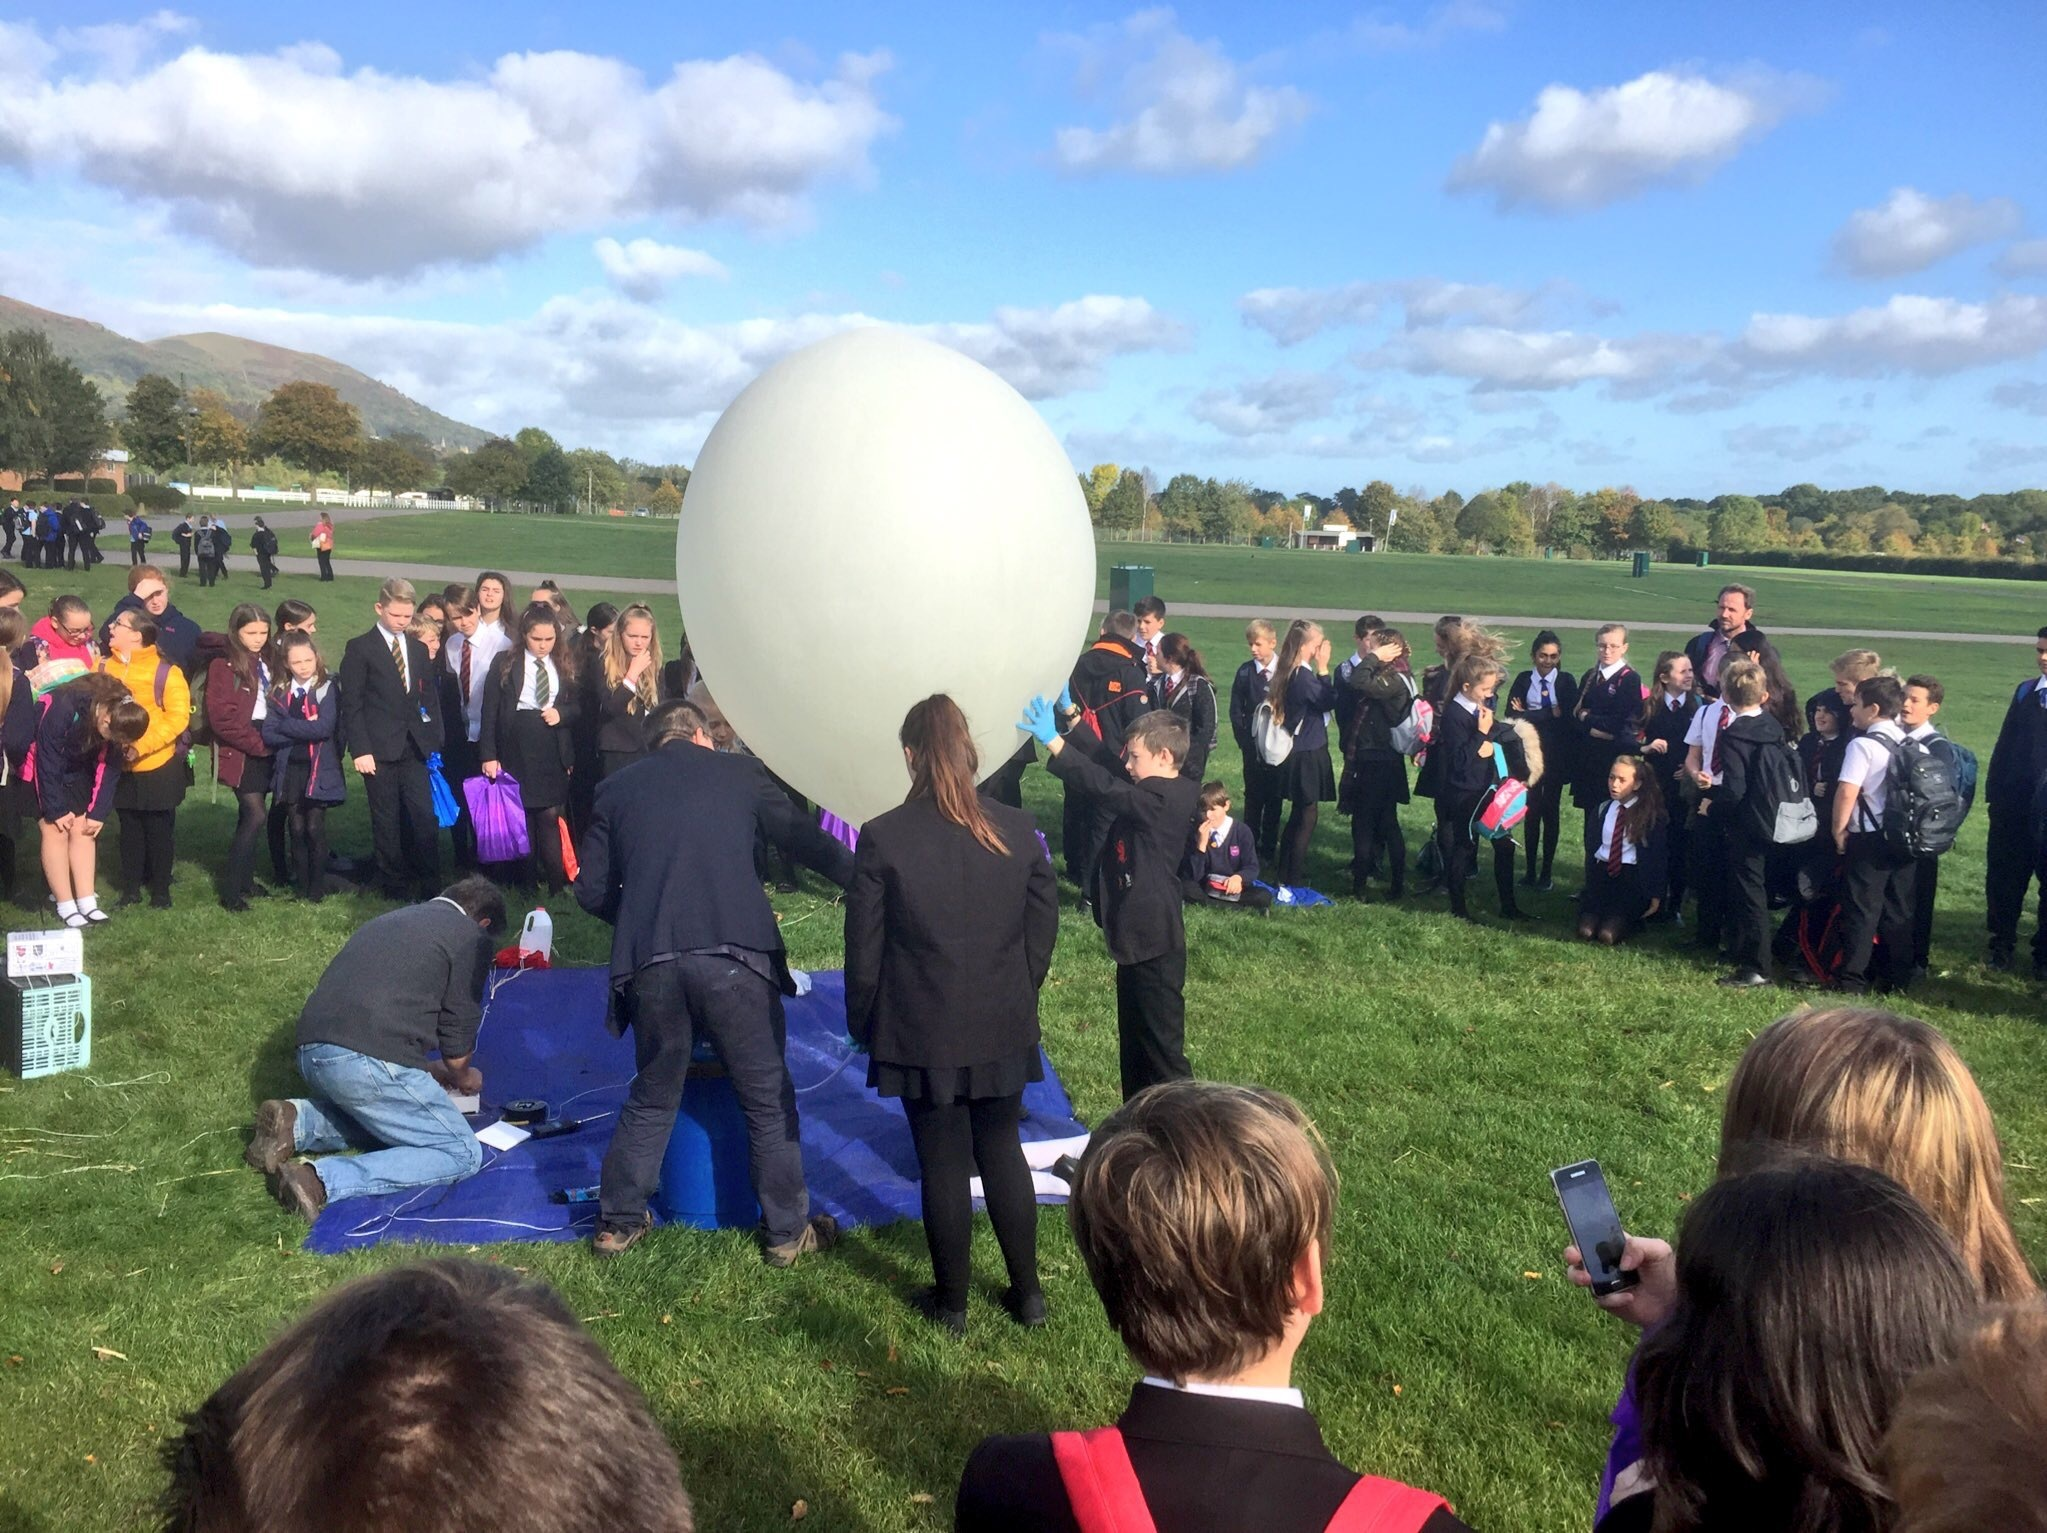 Launching the balloon.